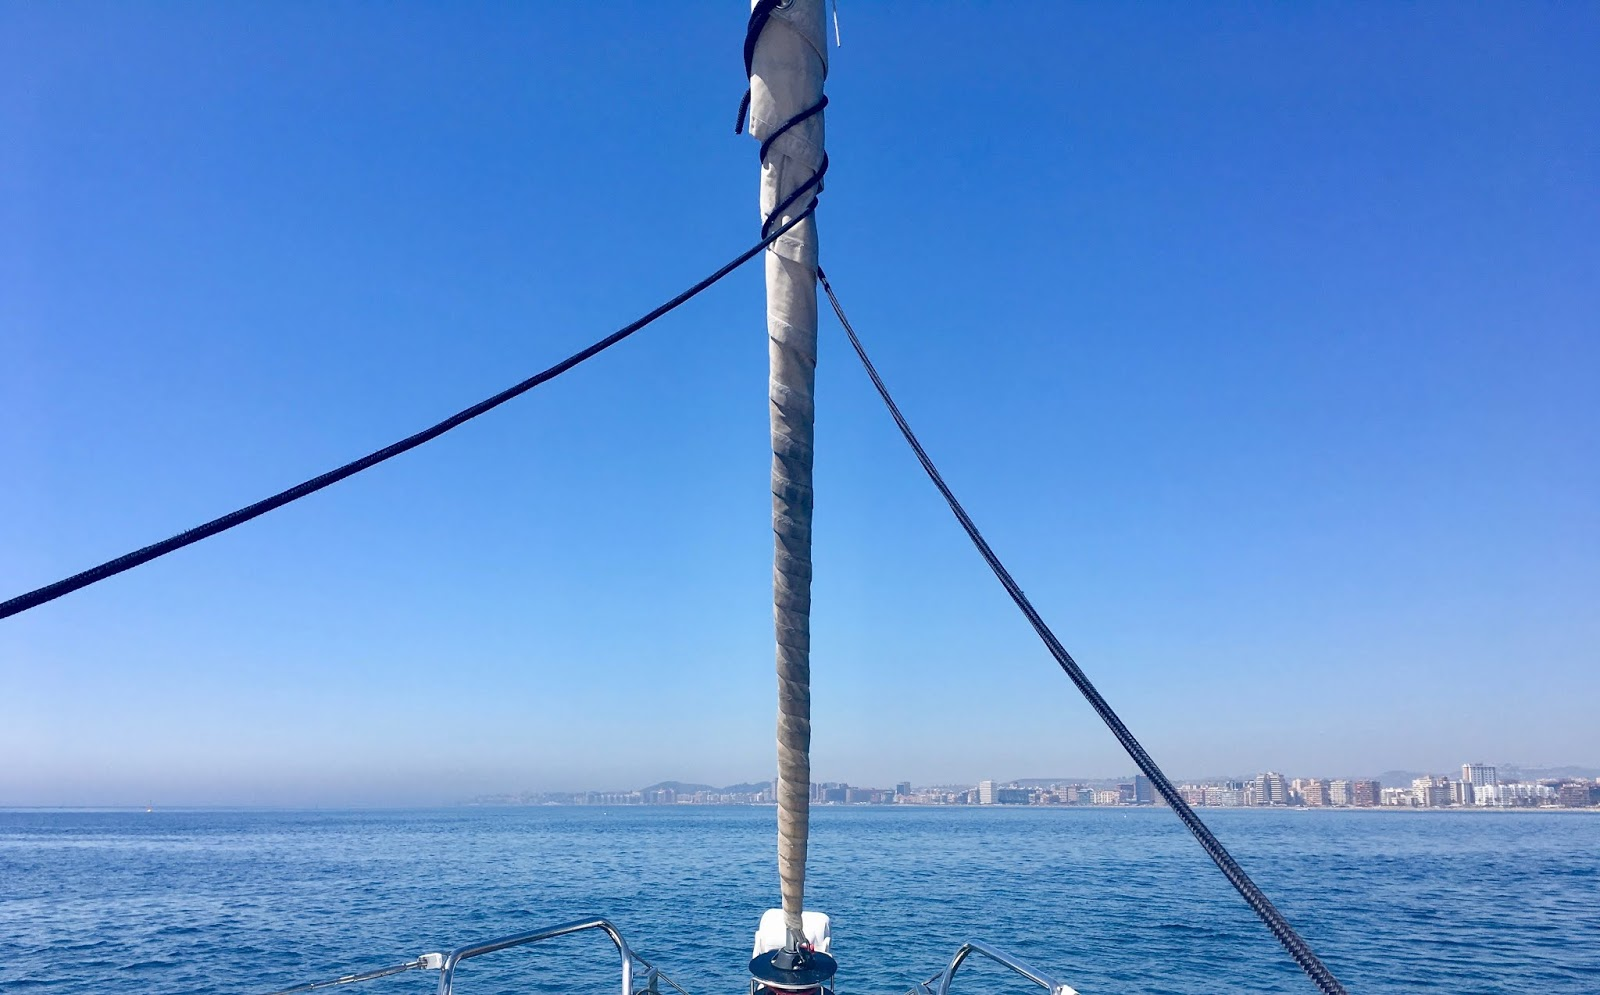 Boat trips in Fuengirola - Bombay Sapphire